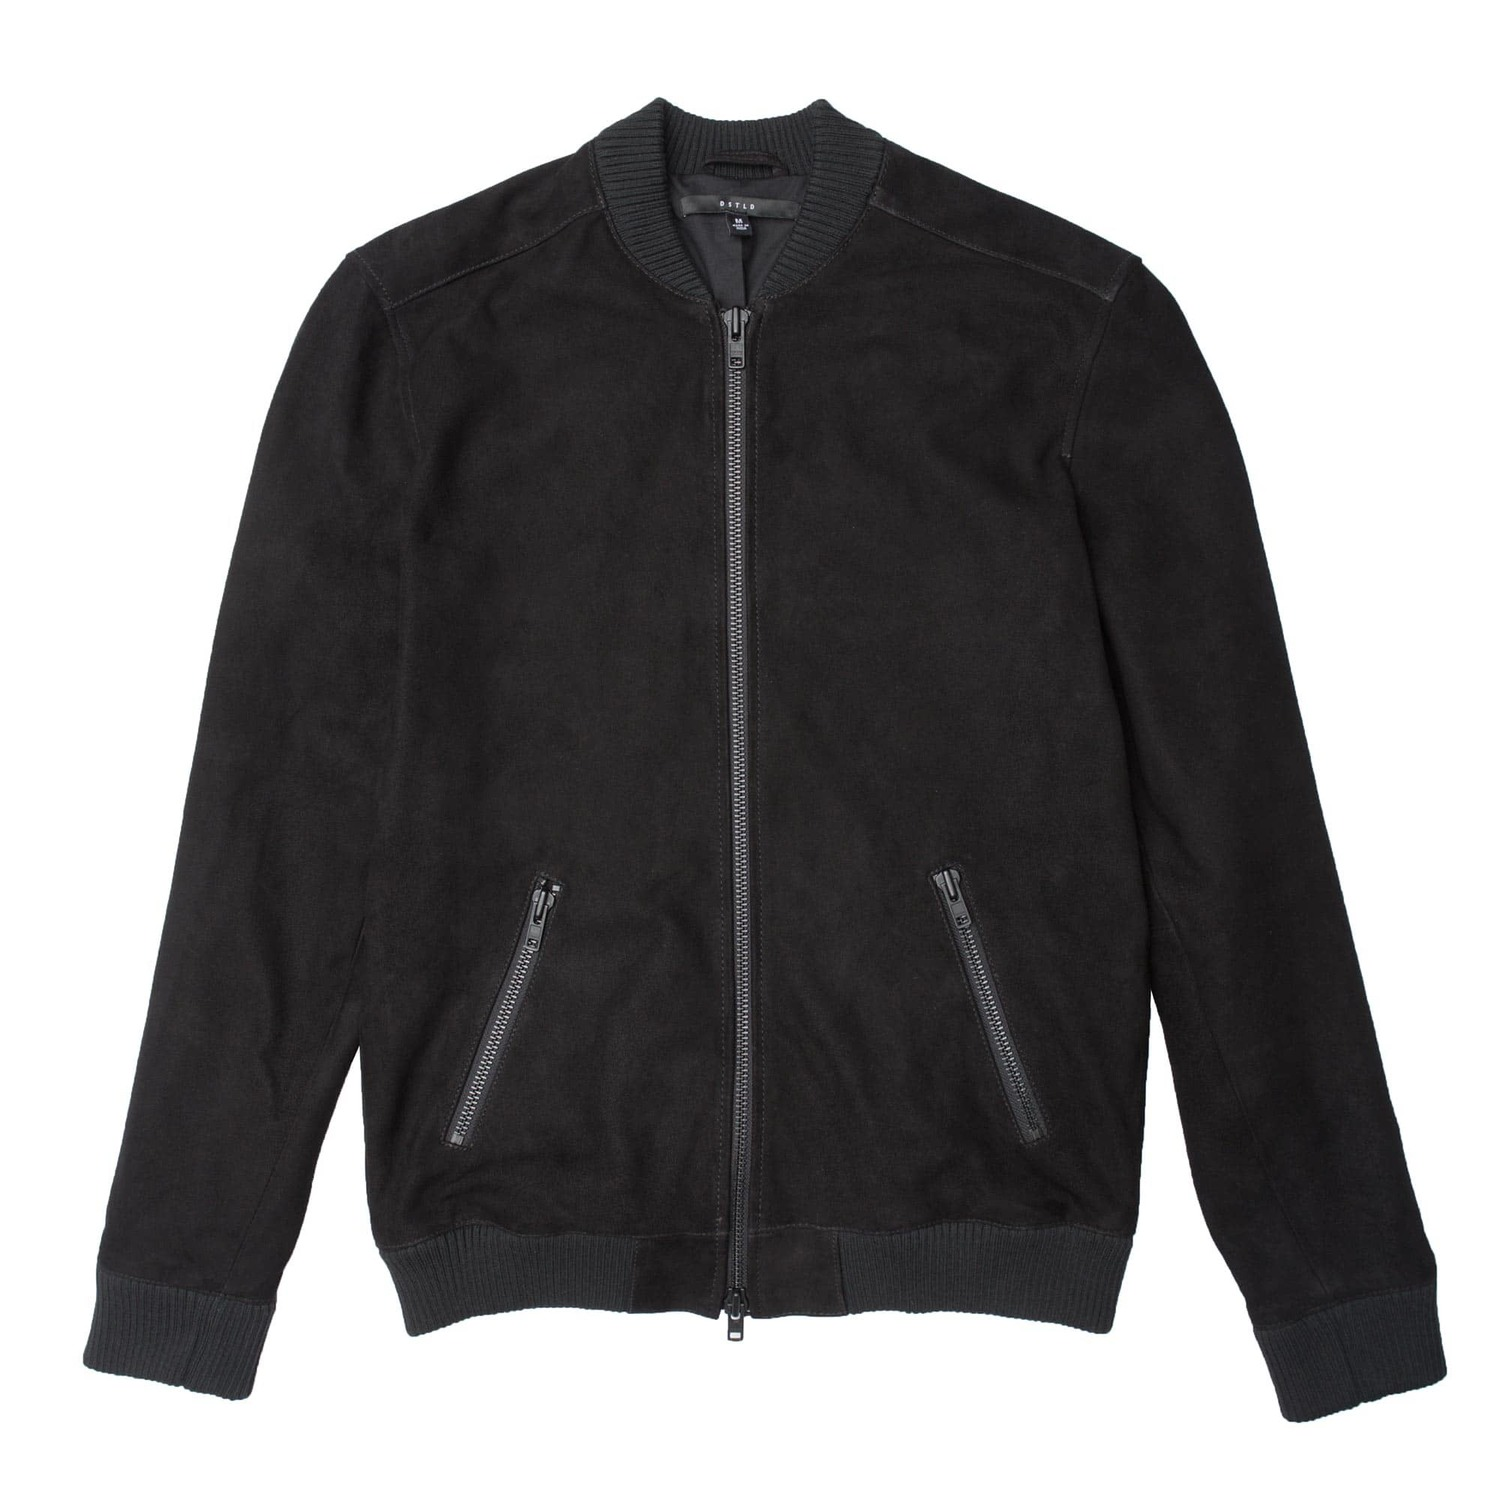 Mens Suede Bomber Jacket In Black $350 | DSTLD